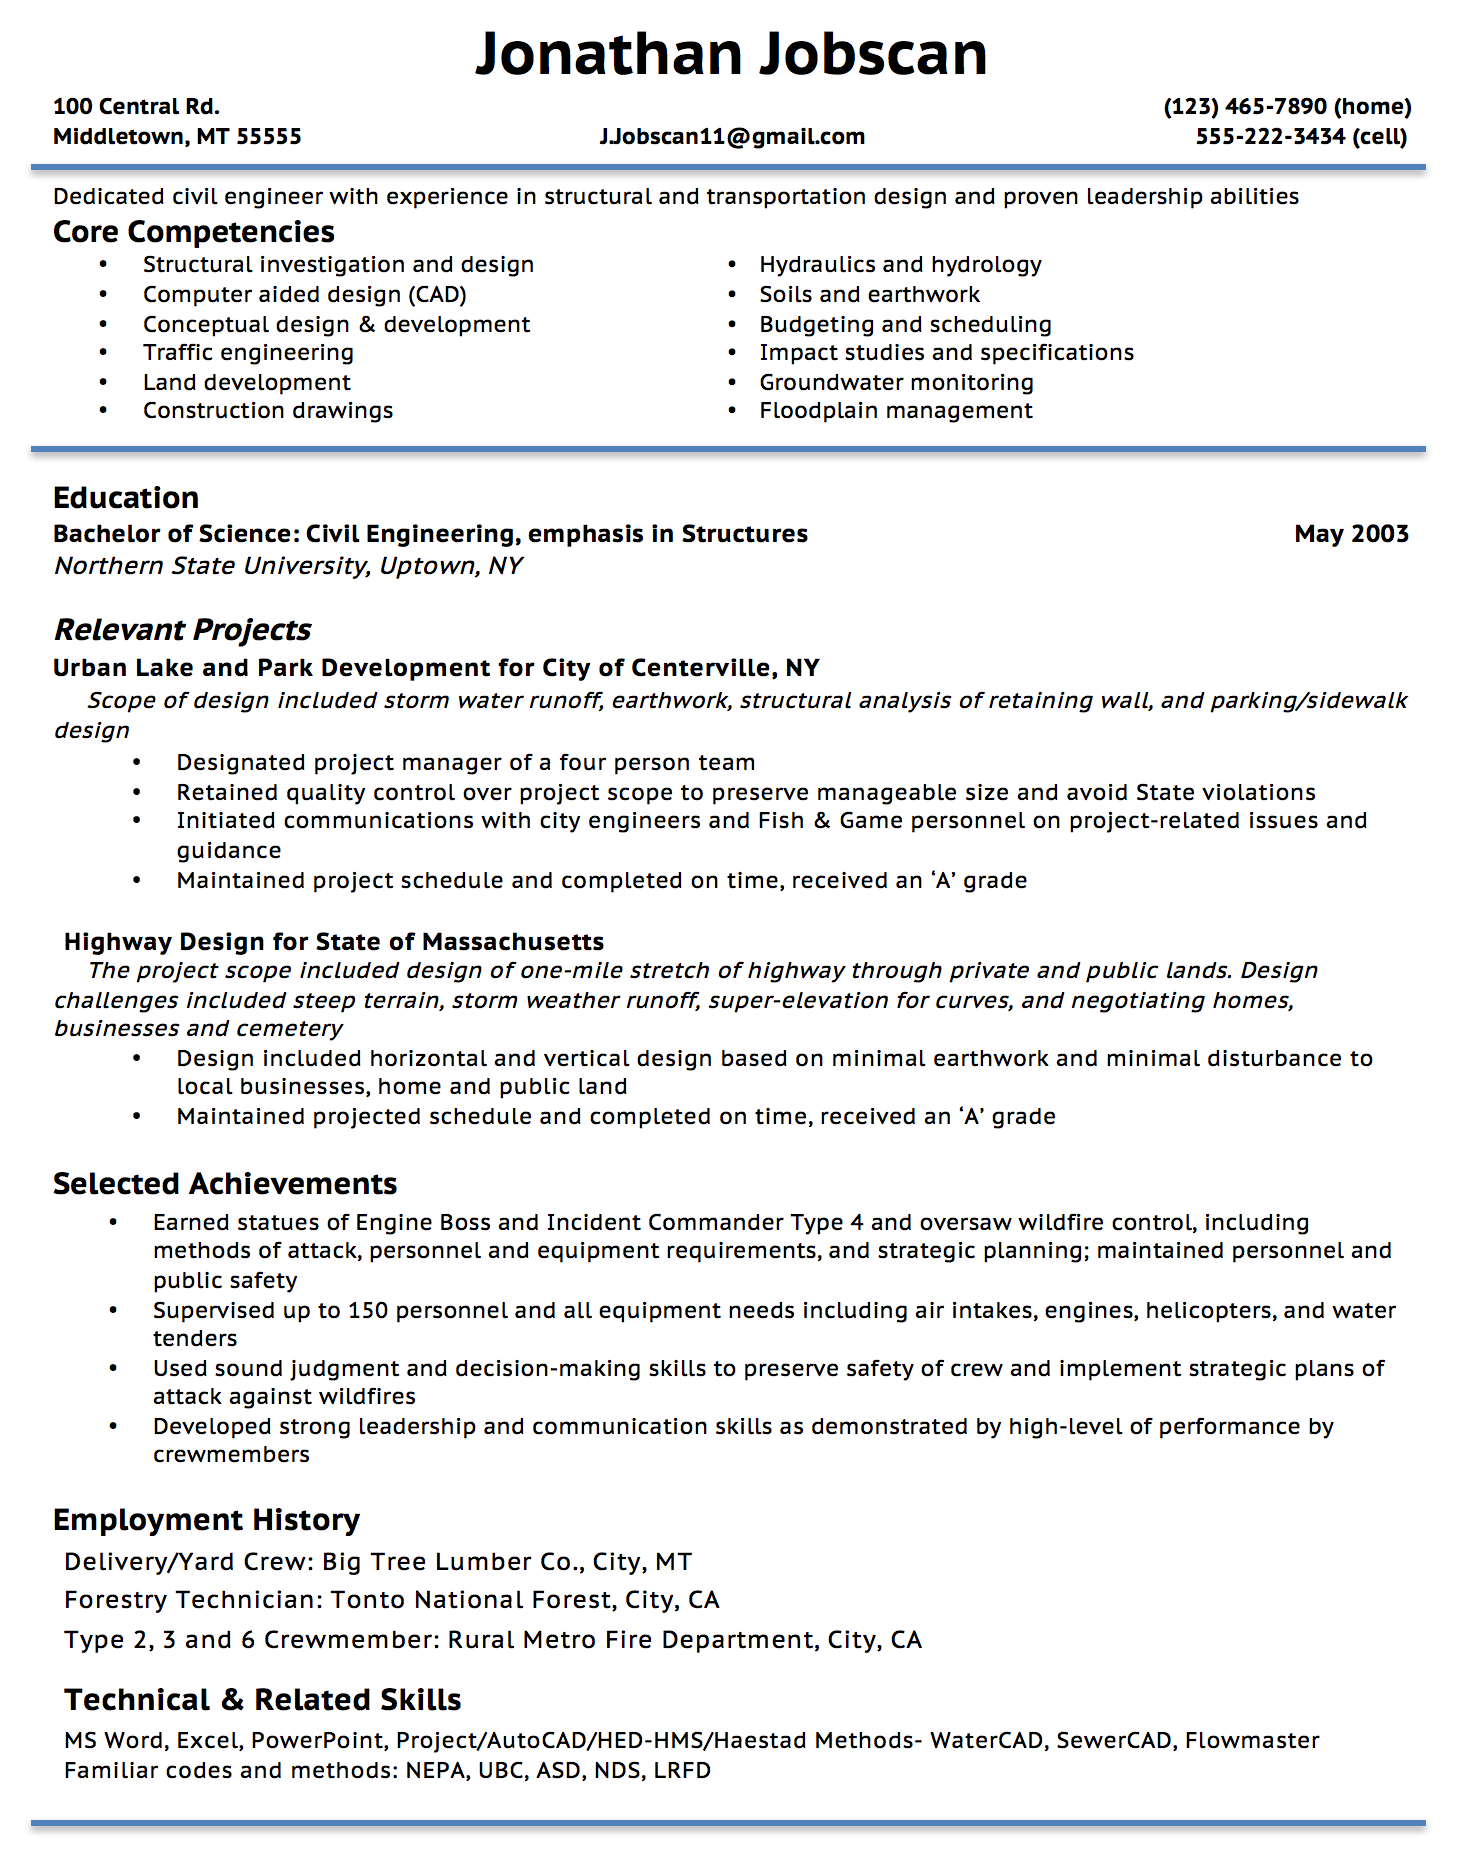 Opposenewapstandardsus  Nice Resume Writing Guide  Jobscan With Excellent Example Of A Functional Resume Format With Beauteous Infographic Resume Builder Also Sales Professional Resume In Addition Sales Objective For Resume And Accounting Intern Resume As Well As Hha Resume Additionally Resume Summary Statements From Jobscanco With Opposenewapstandardsus  Excellent Resume Writing Guide  Jobscan With Beauteous Example Of A Functional Resume Format And Nice Infographic Resume Builder Also Sales Professional Resume In Addition Sales Objective For Resume From Jobscanco